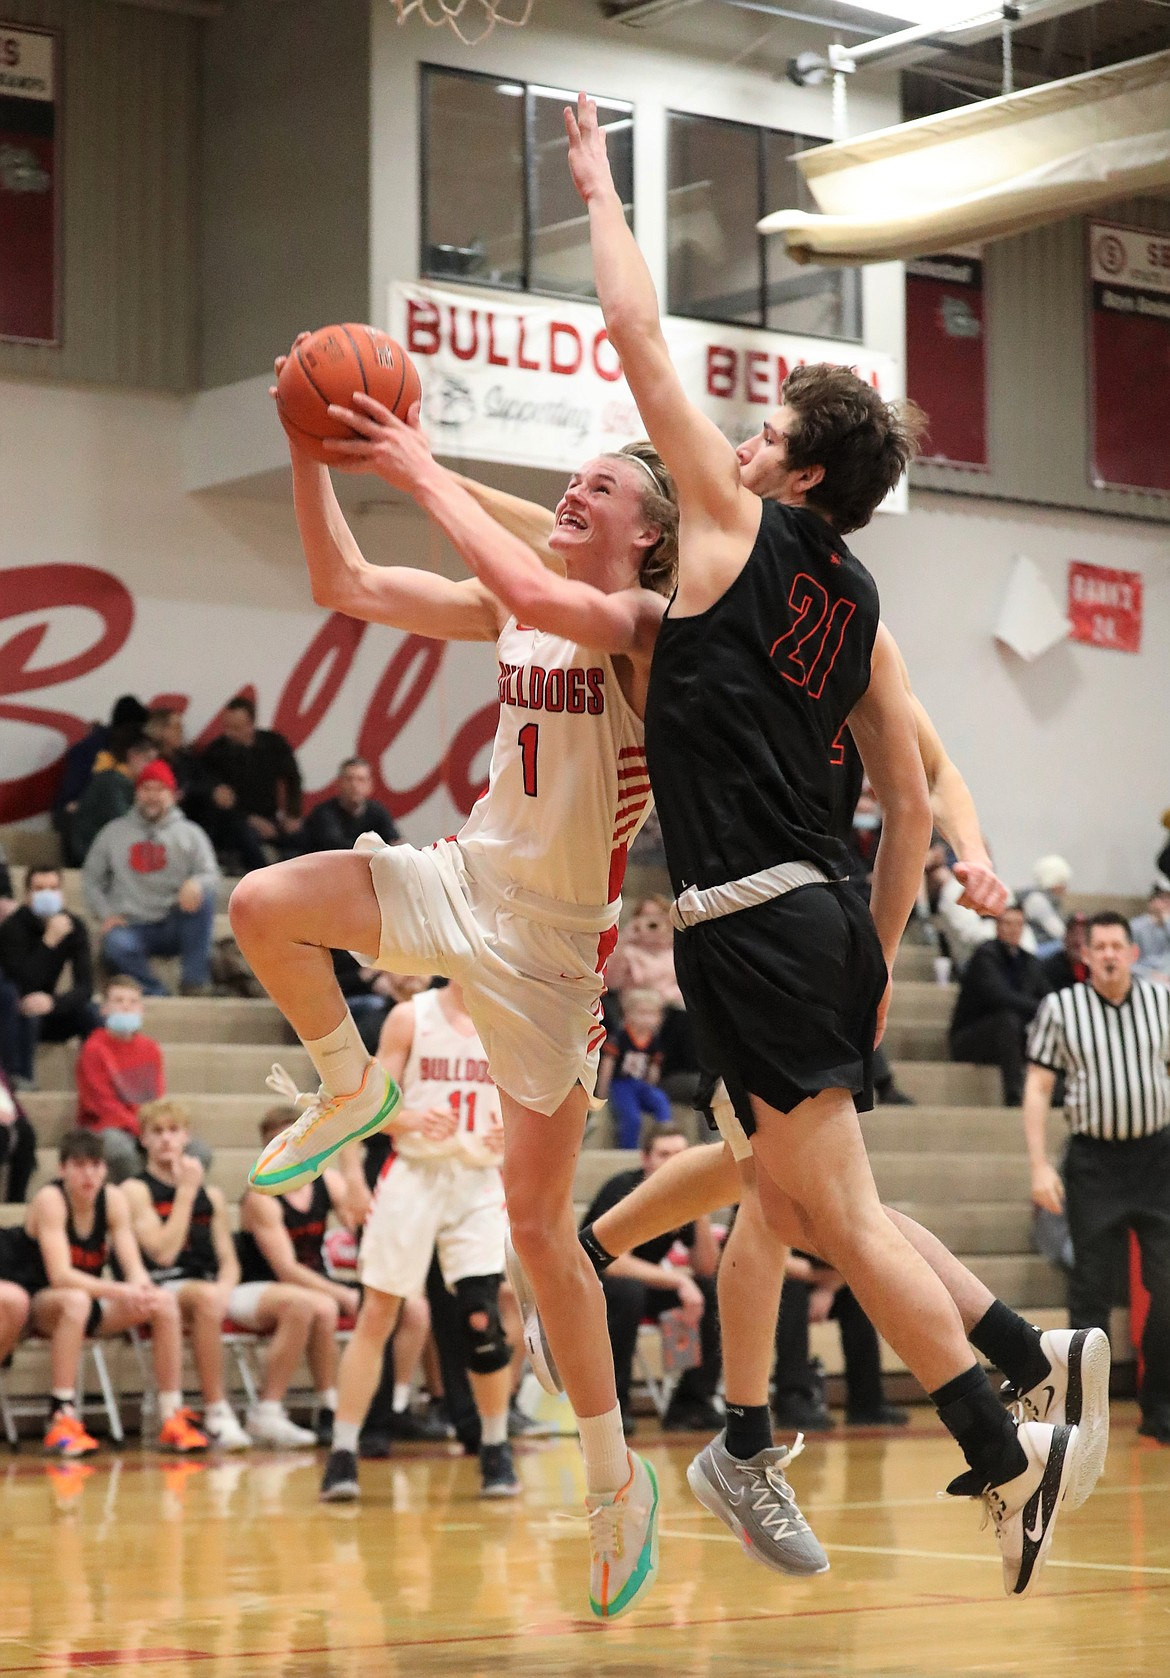 Colin Roos fights through the Post Falls defense to attempt a layup.